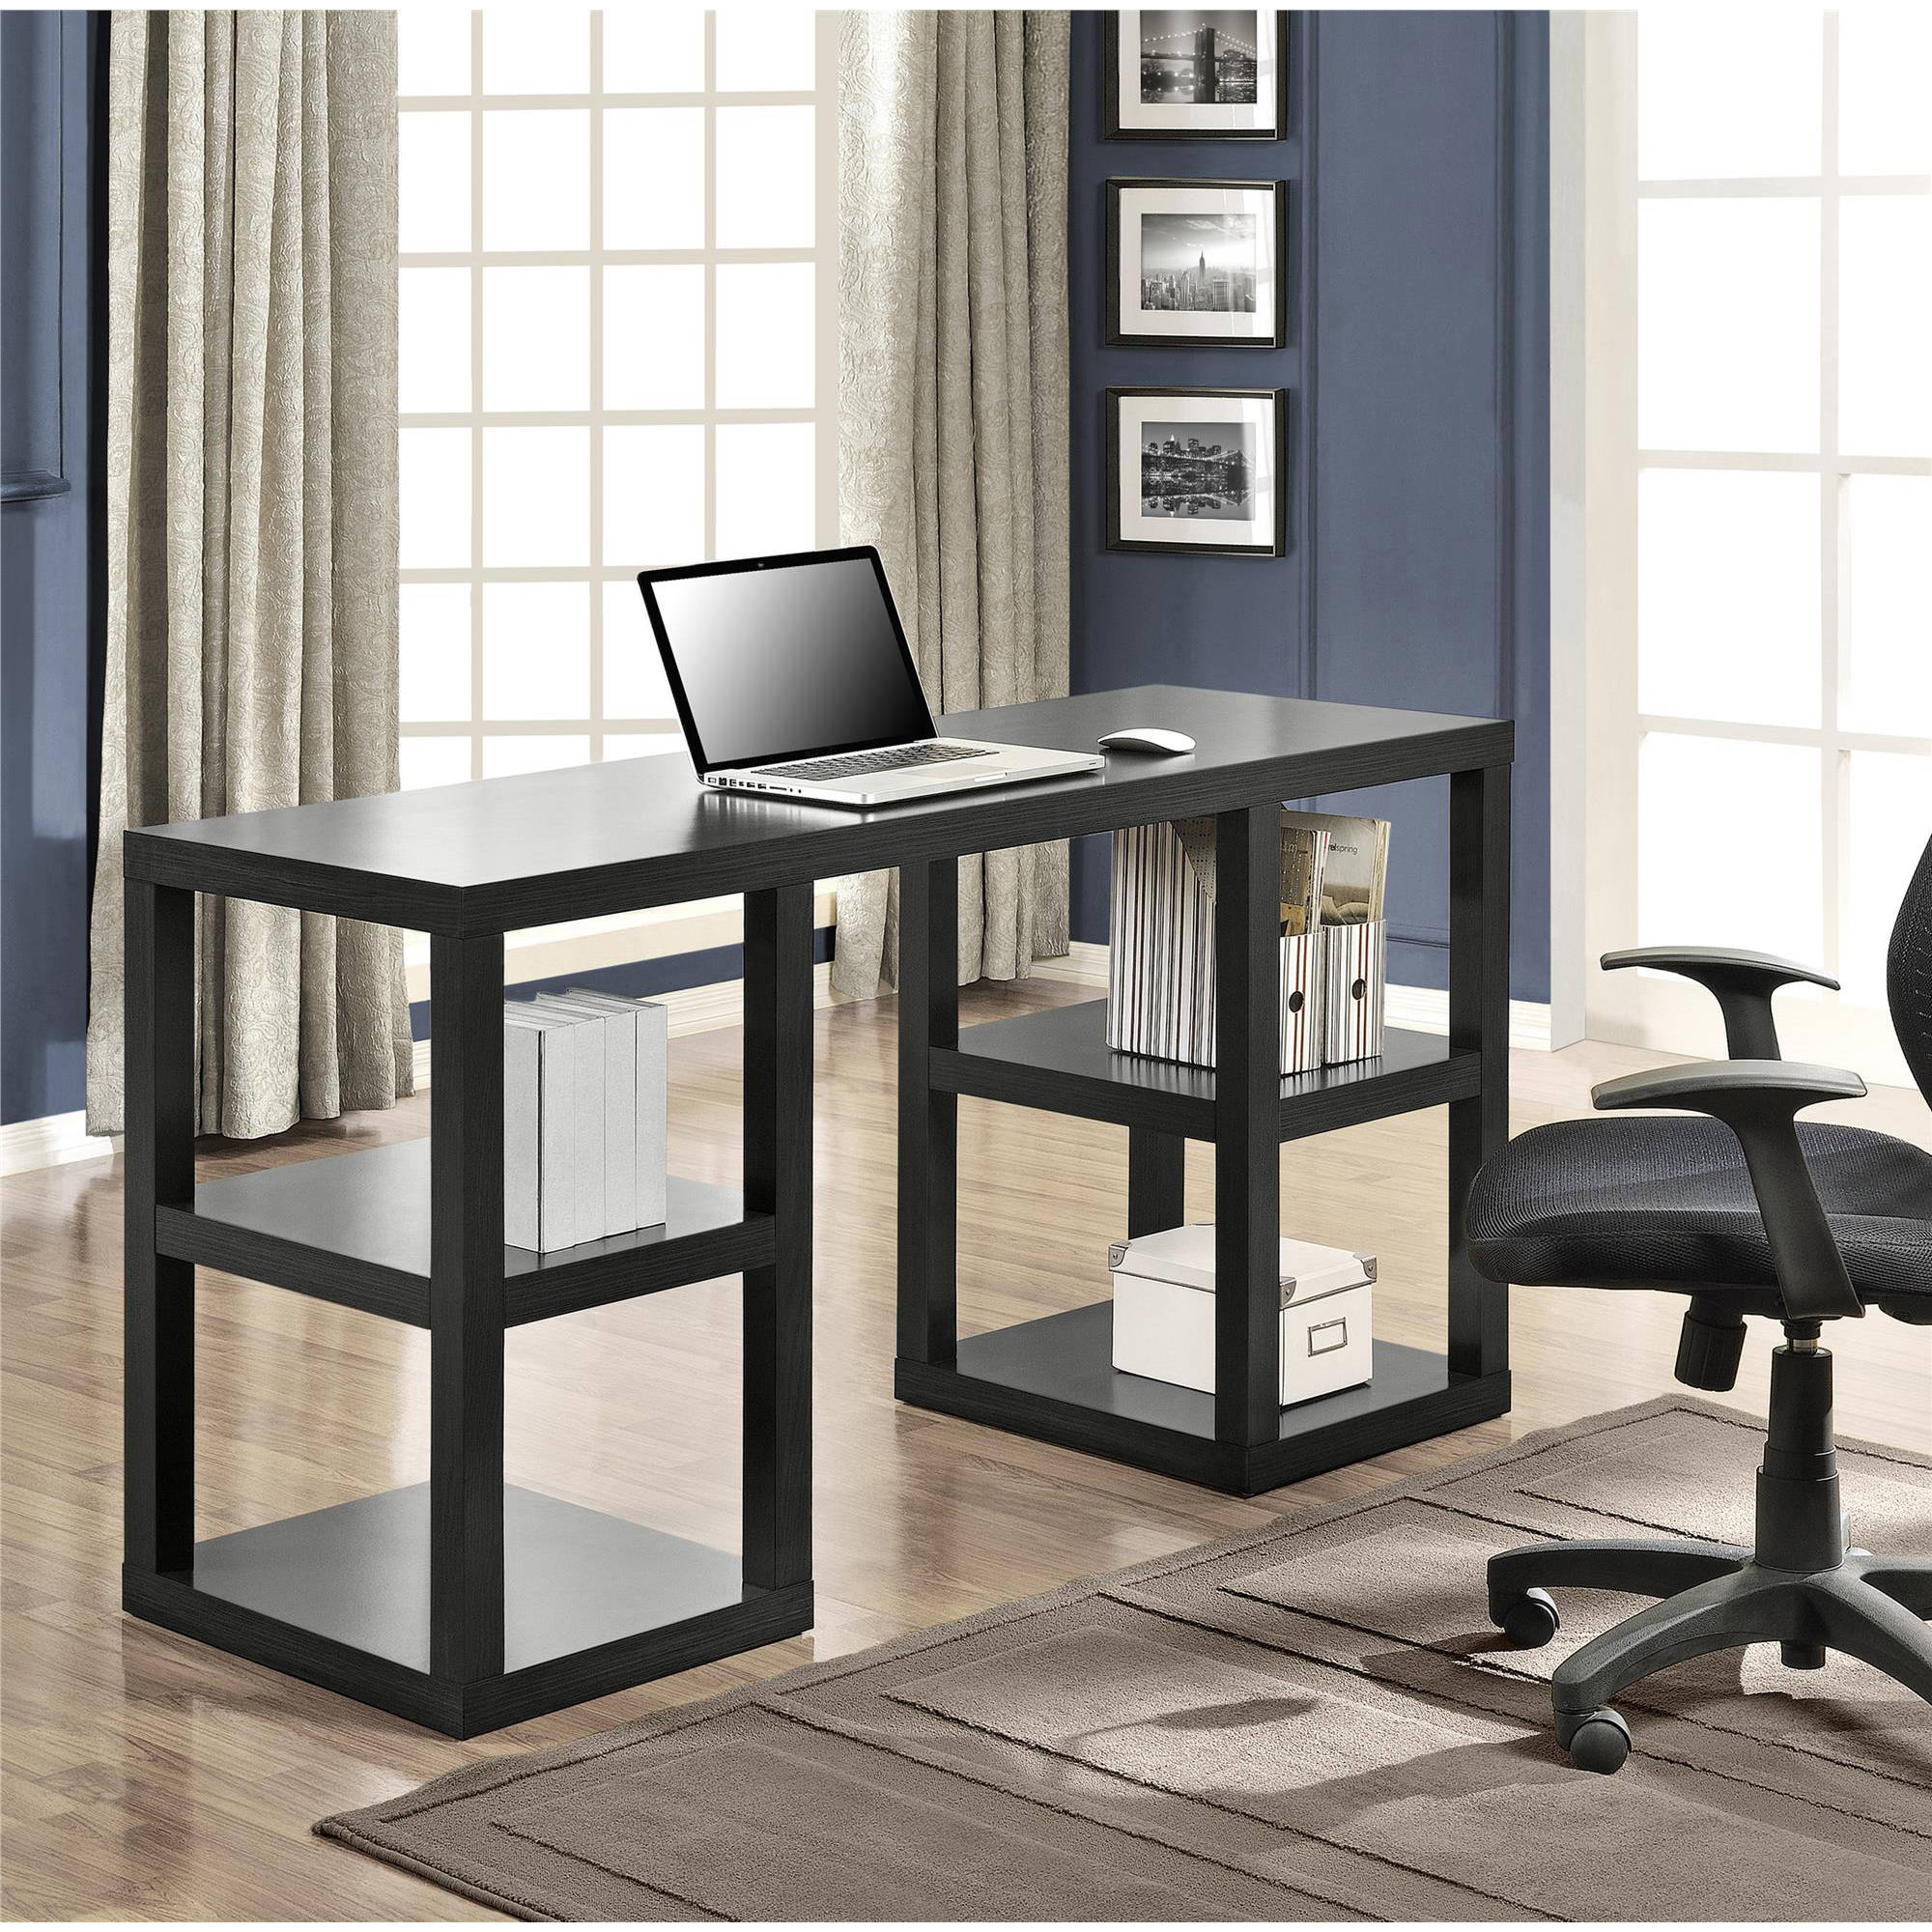 Double Home Office Desk Computer Desk Home Office Double Pedestal Parsons Desk